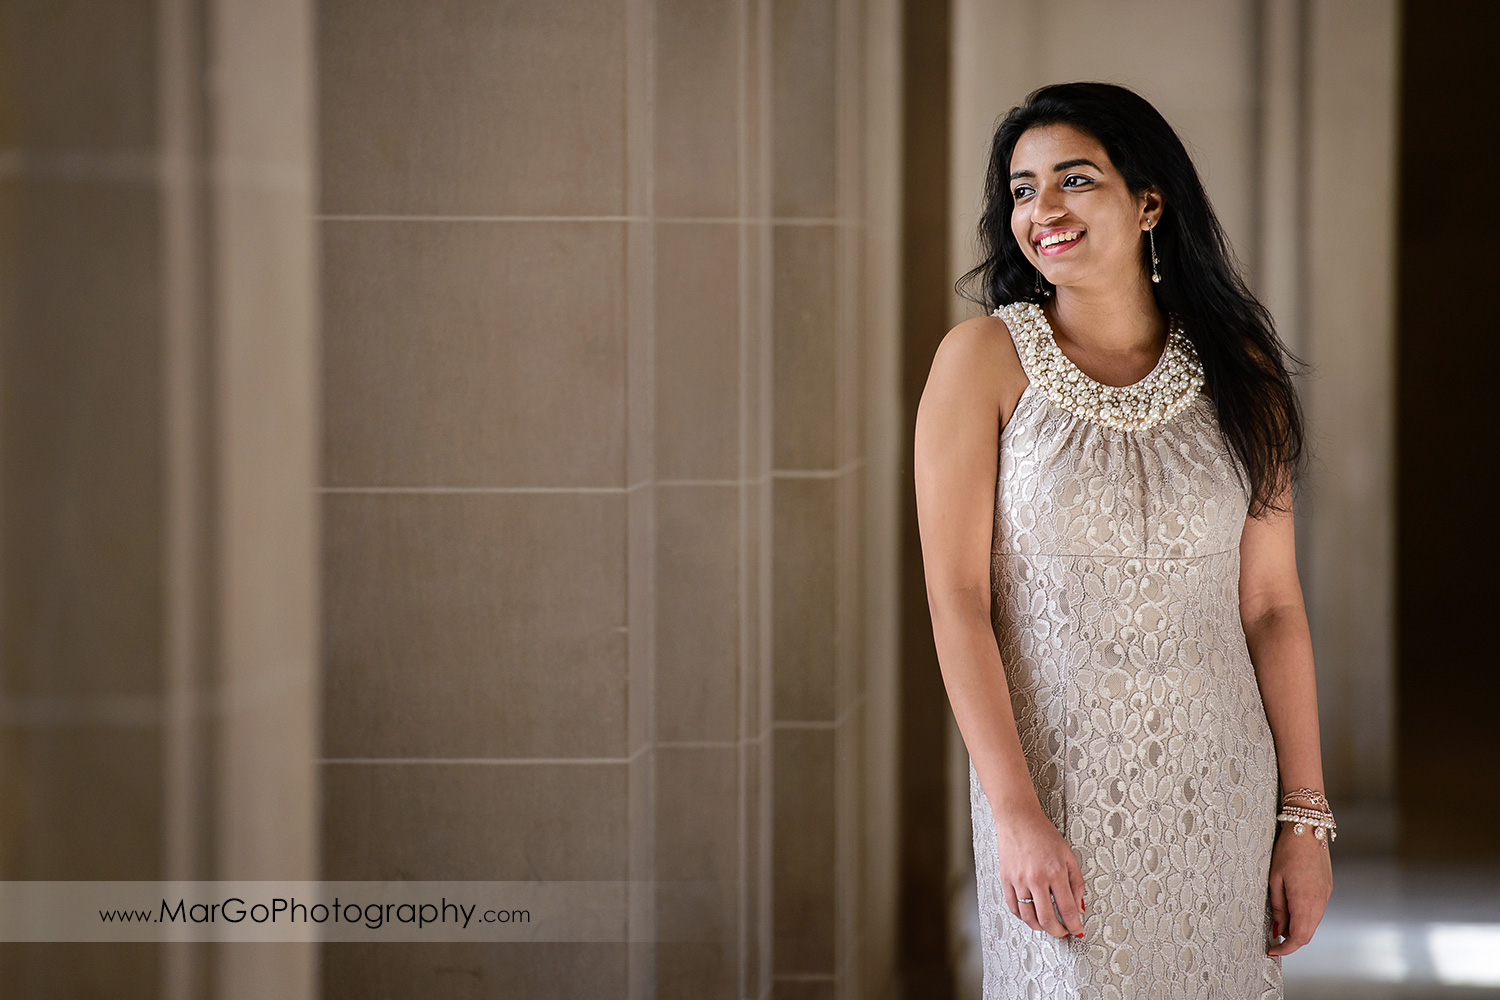 3/4 portrait of woman in beige dress on the third floor of San Francisco City Hall